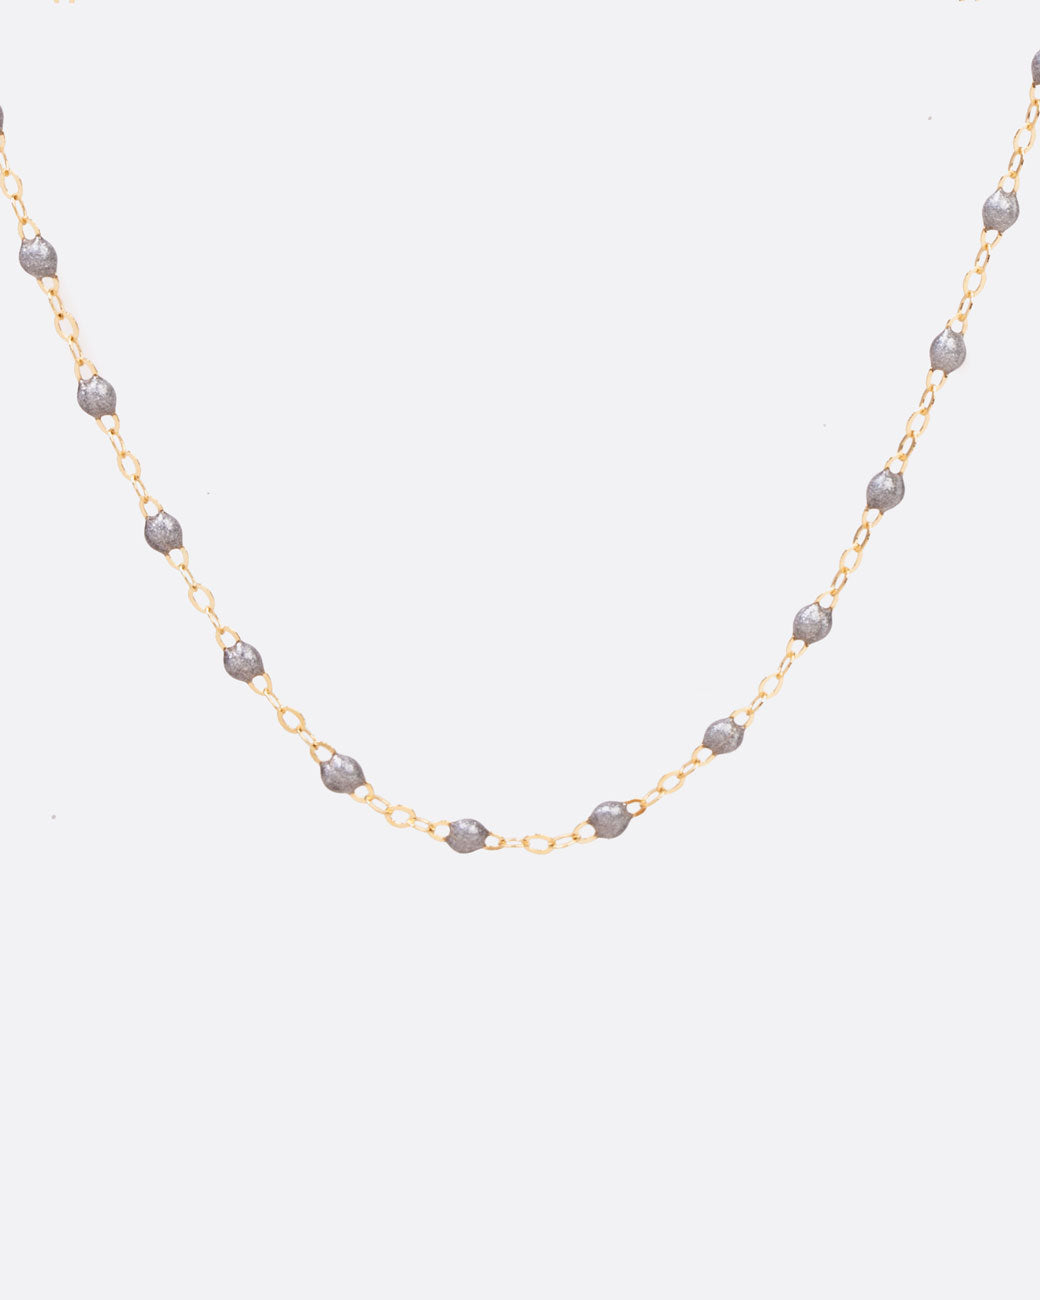 9a8c4013239 Resin Beaded Necklace - 16 Inch